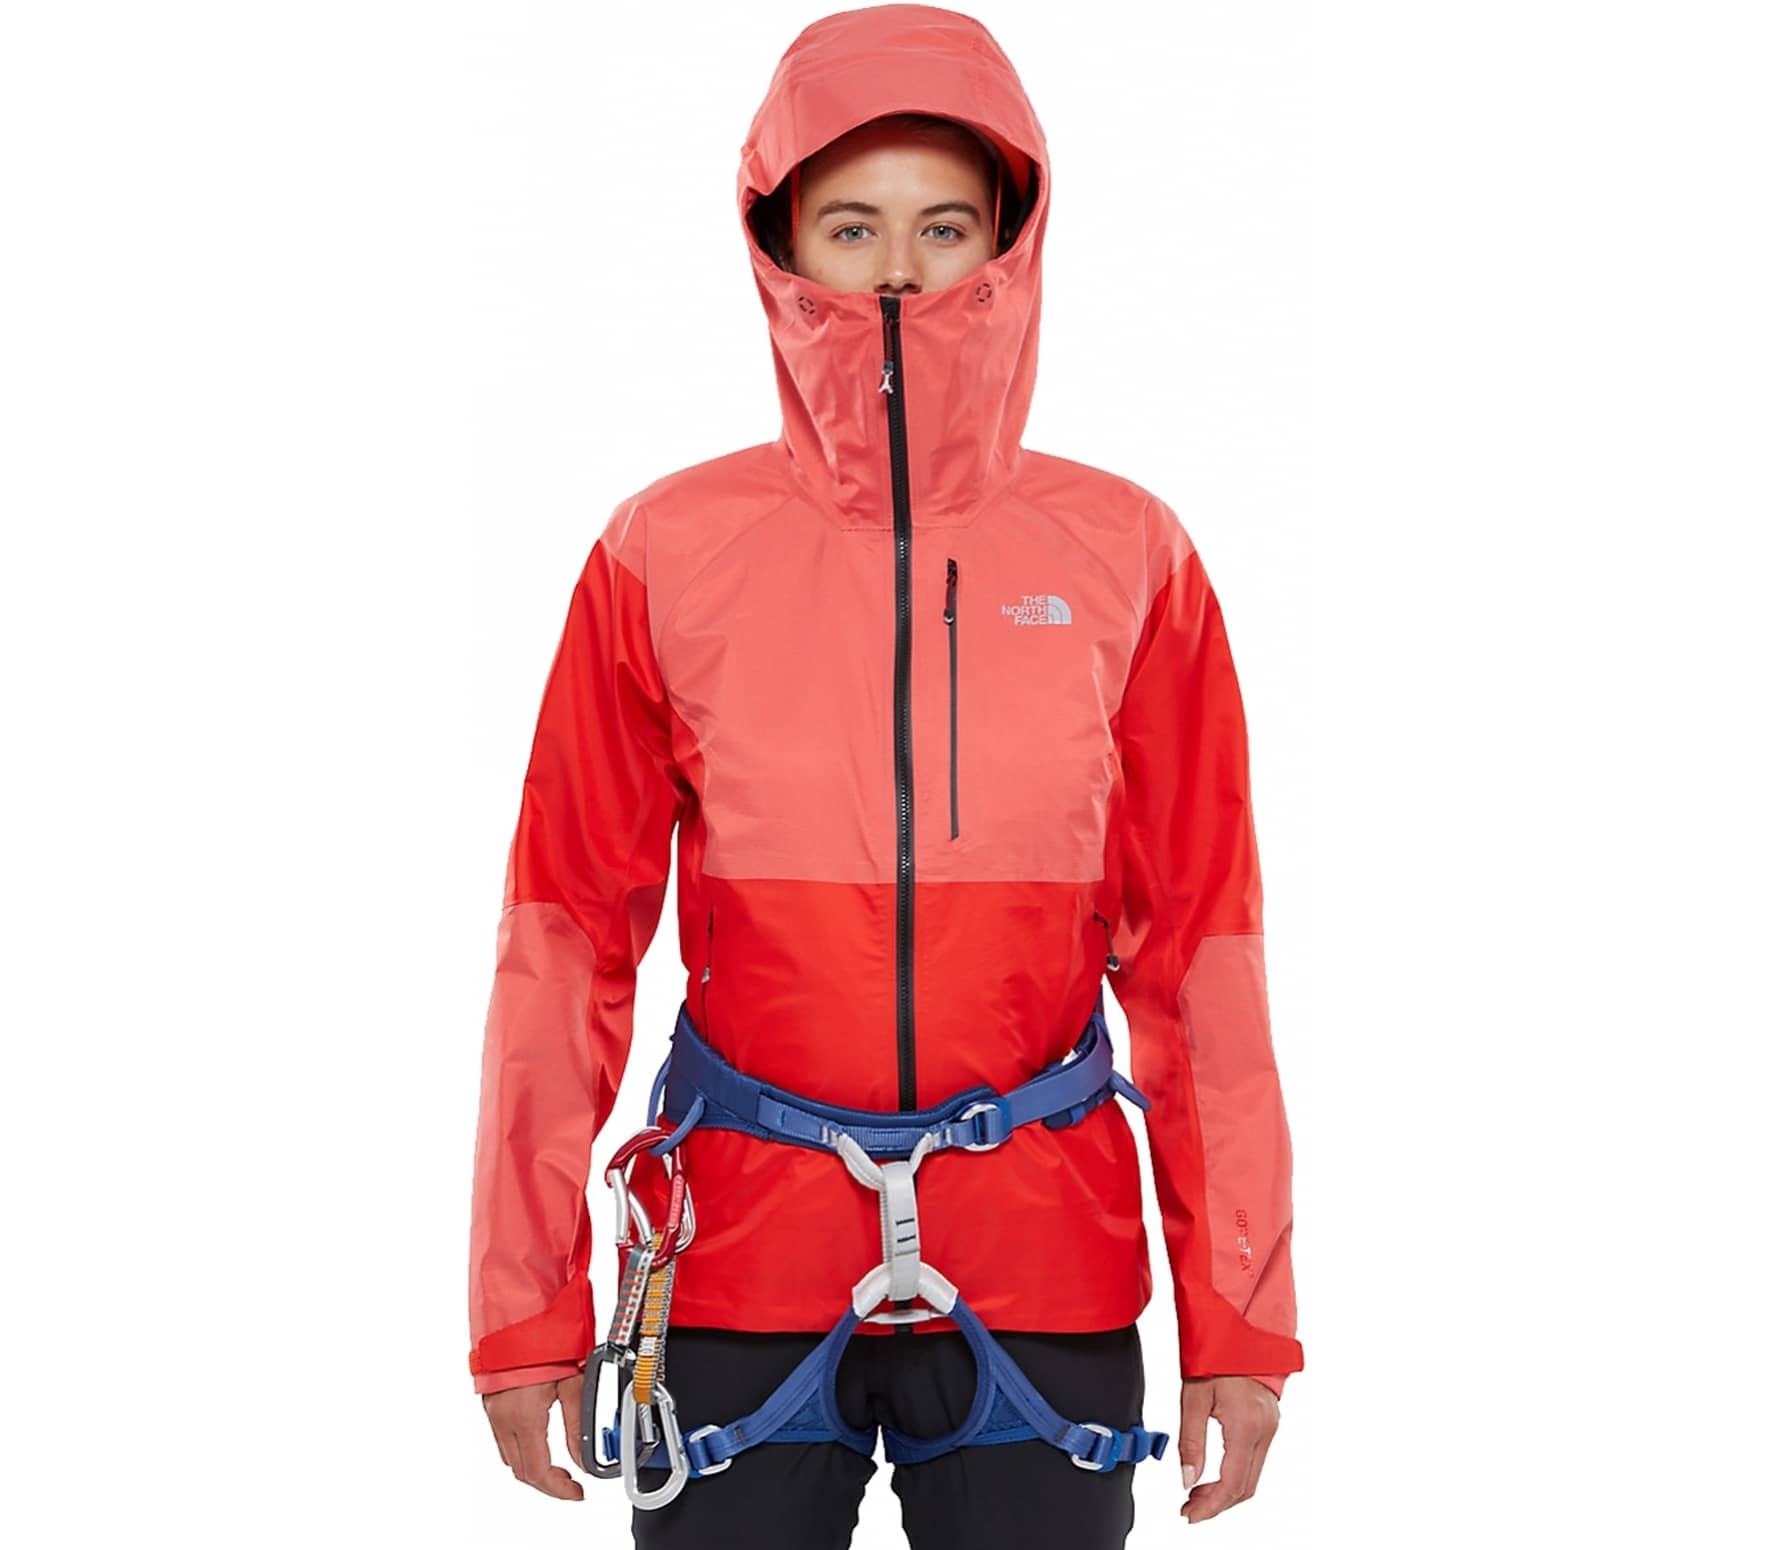 e7a169c6f7 The North Face - Summit L5 FuseForm? GTX® C-Knit women's hardshell jacket